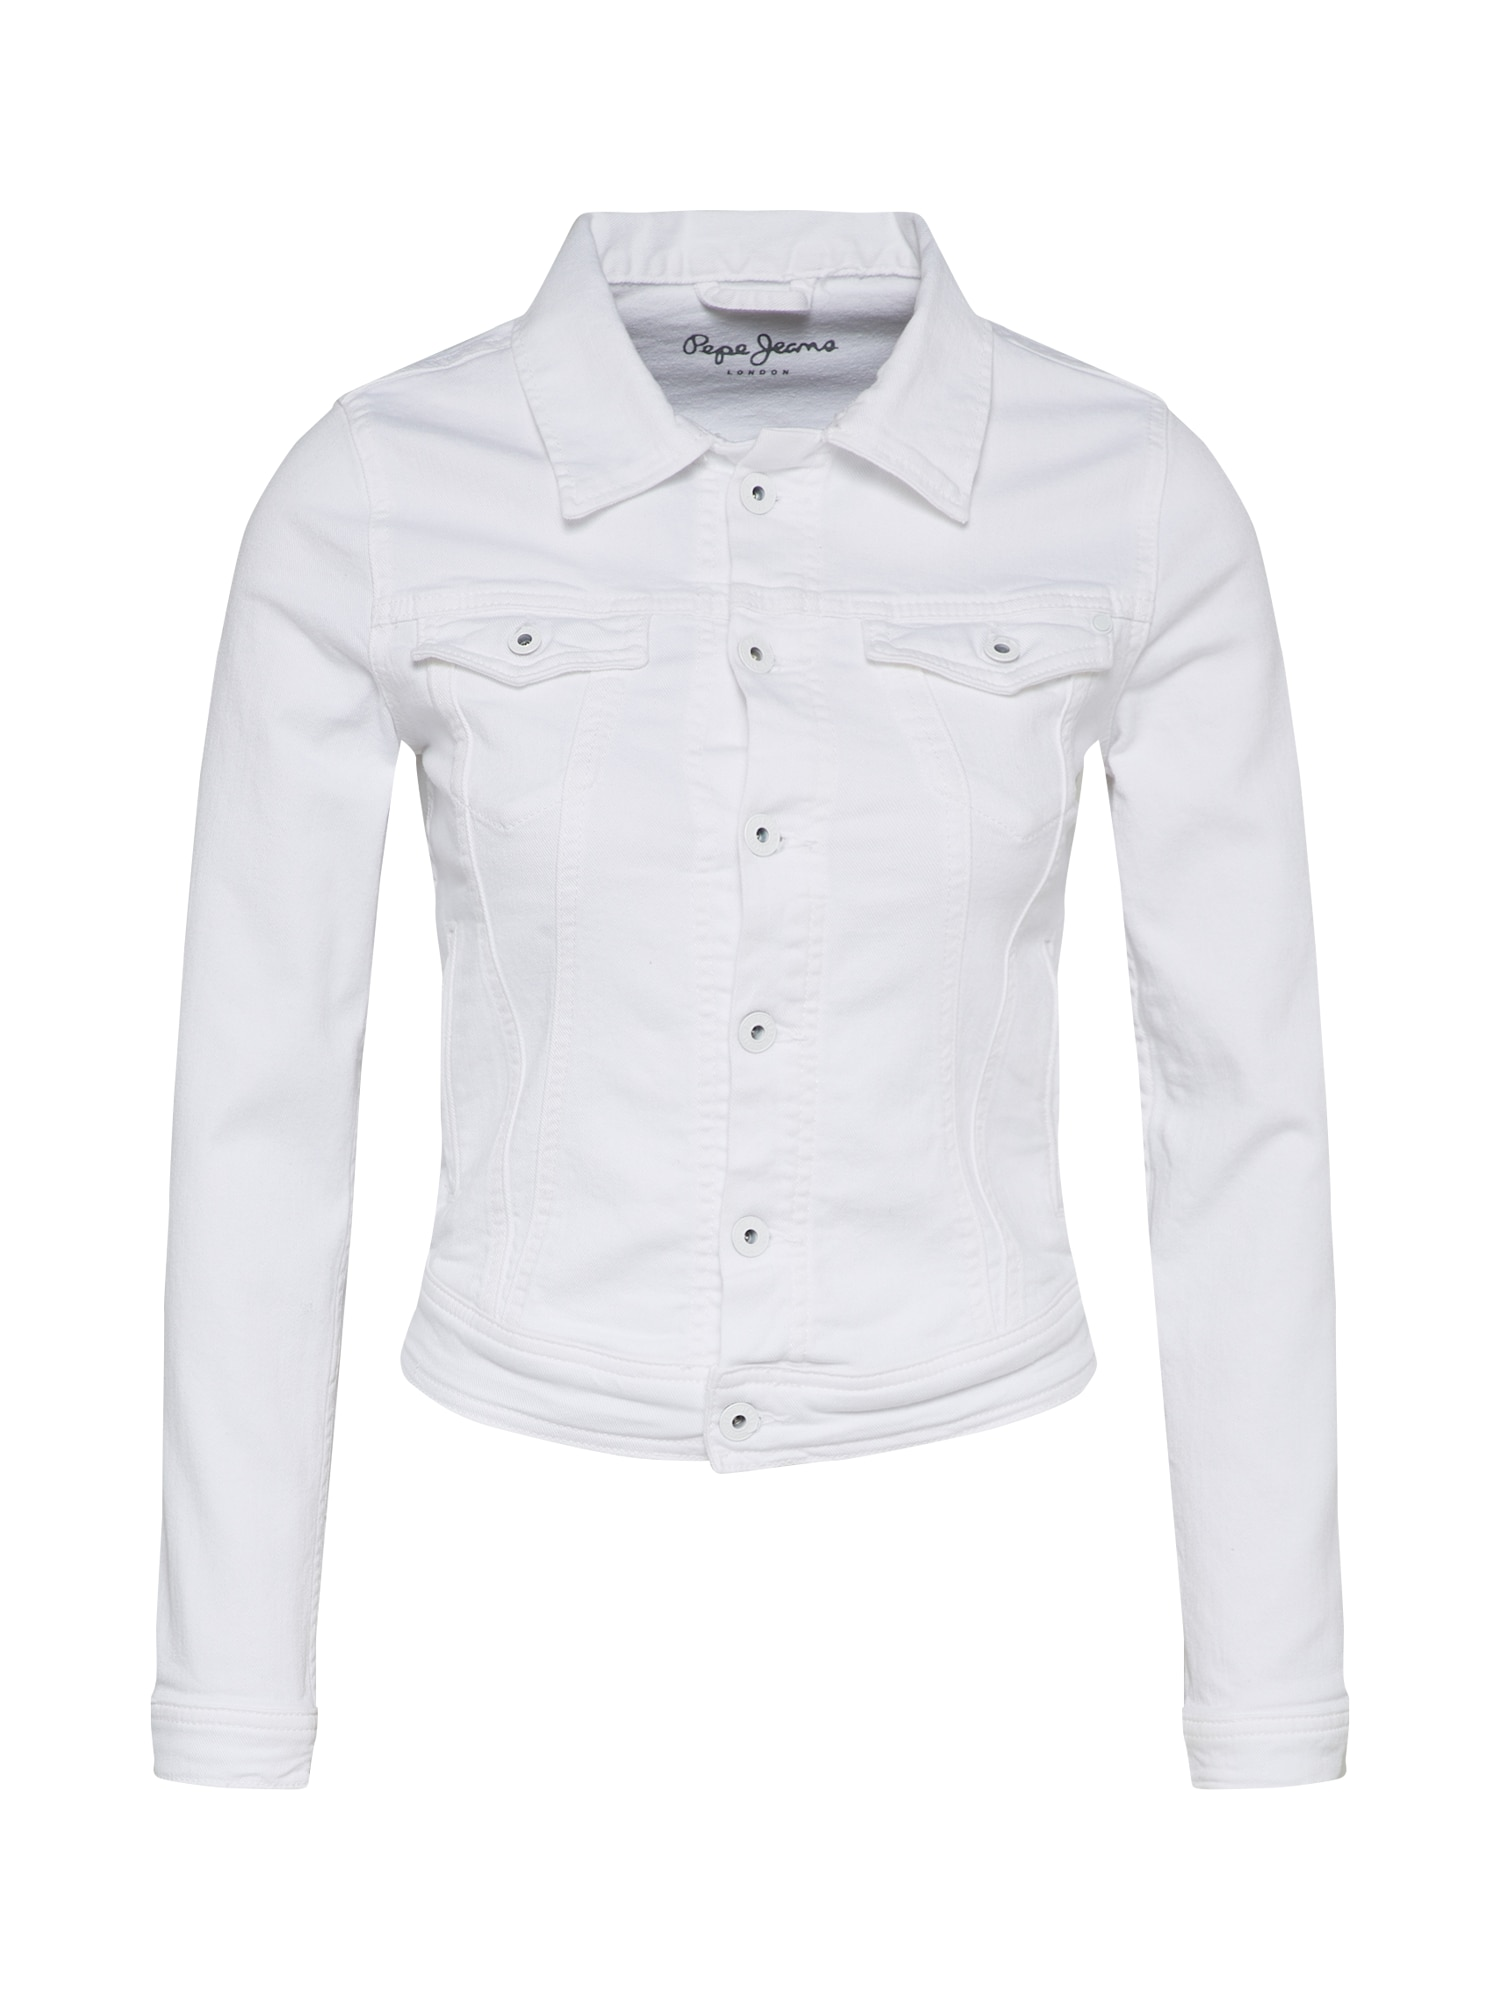 Pepe Jeans, Dames Tussenjas 'Core', wit